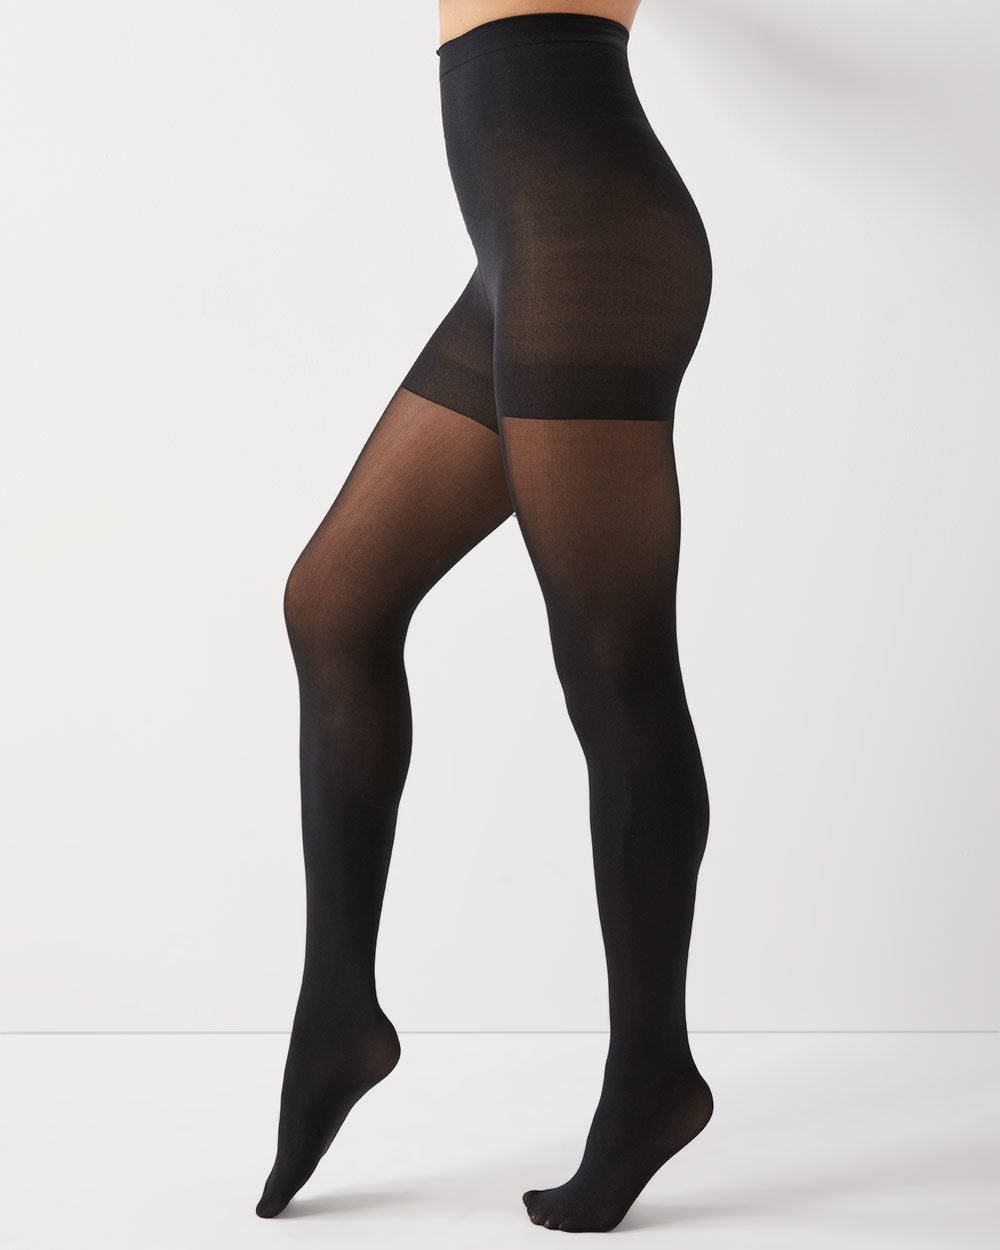 Black Tummy control tights